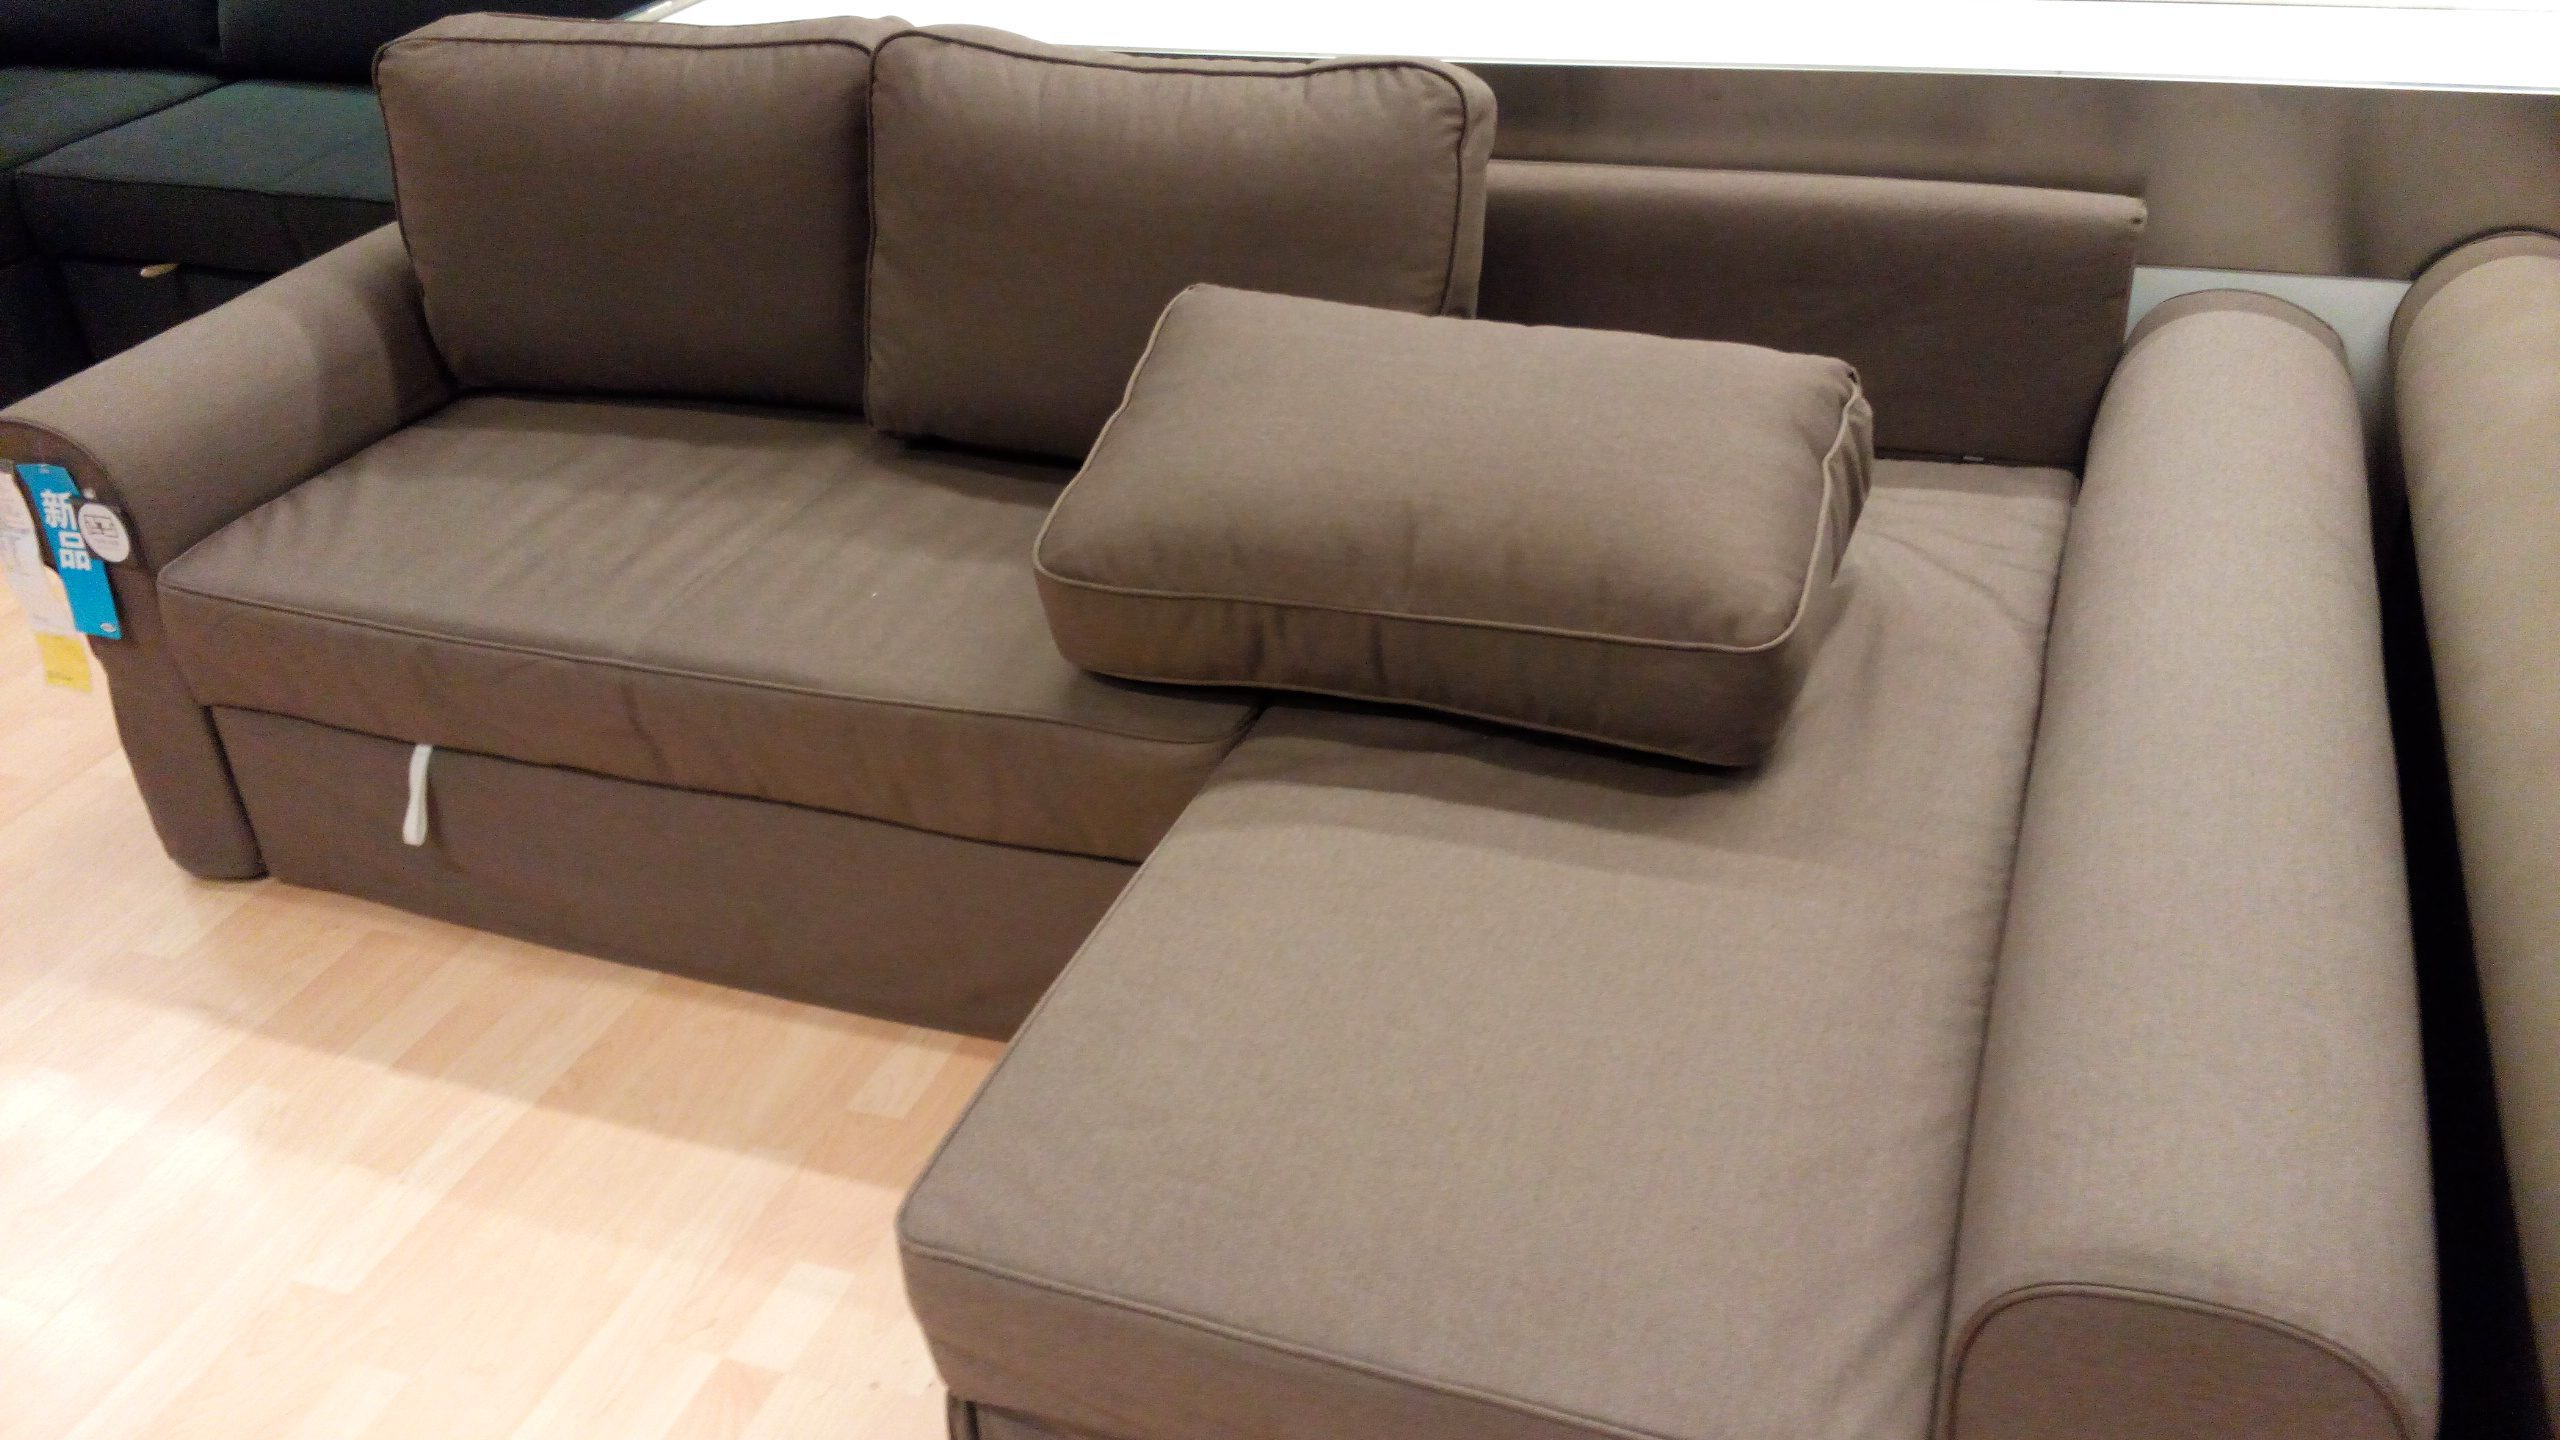 chaise sofa bed ikea modern minimalist vilasund and backabro review return of the clones with